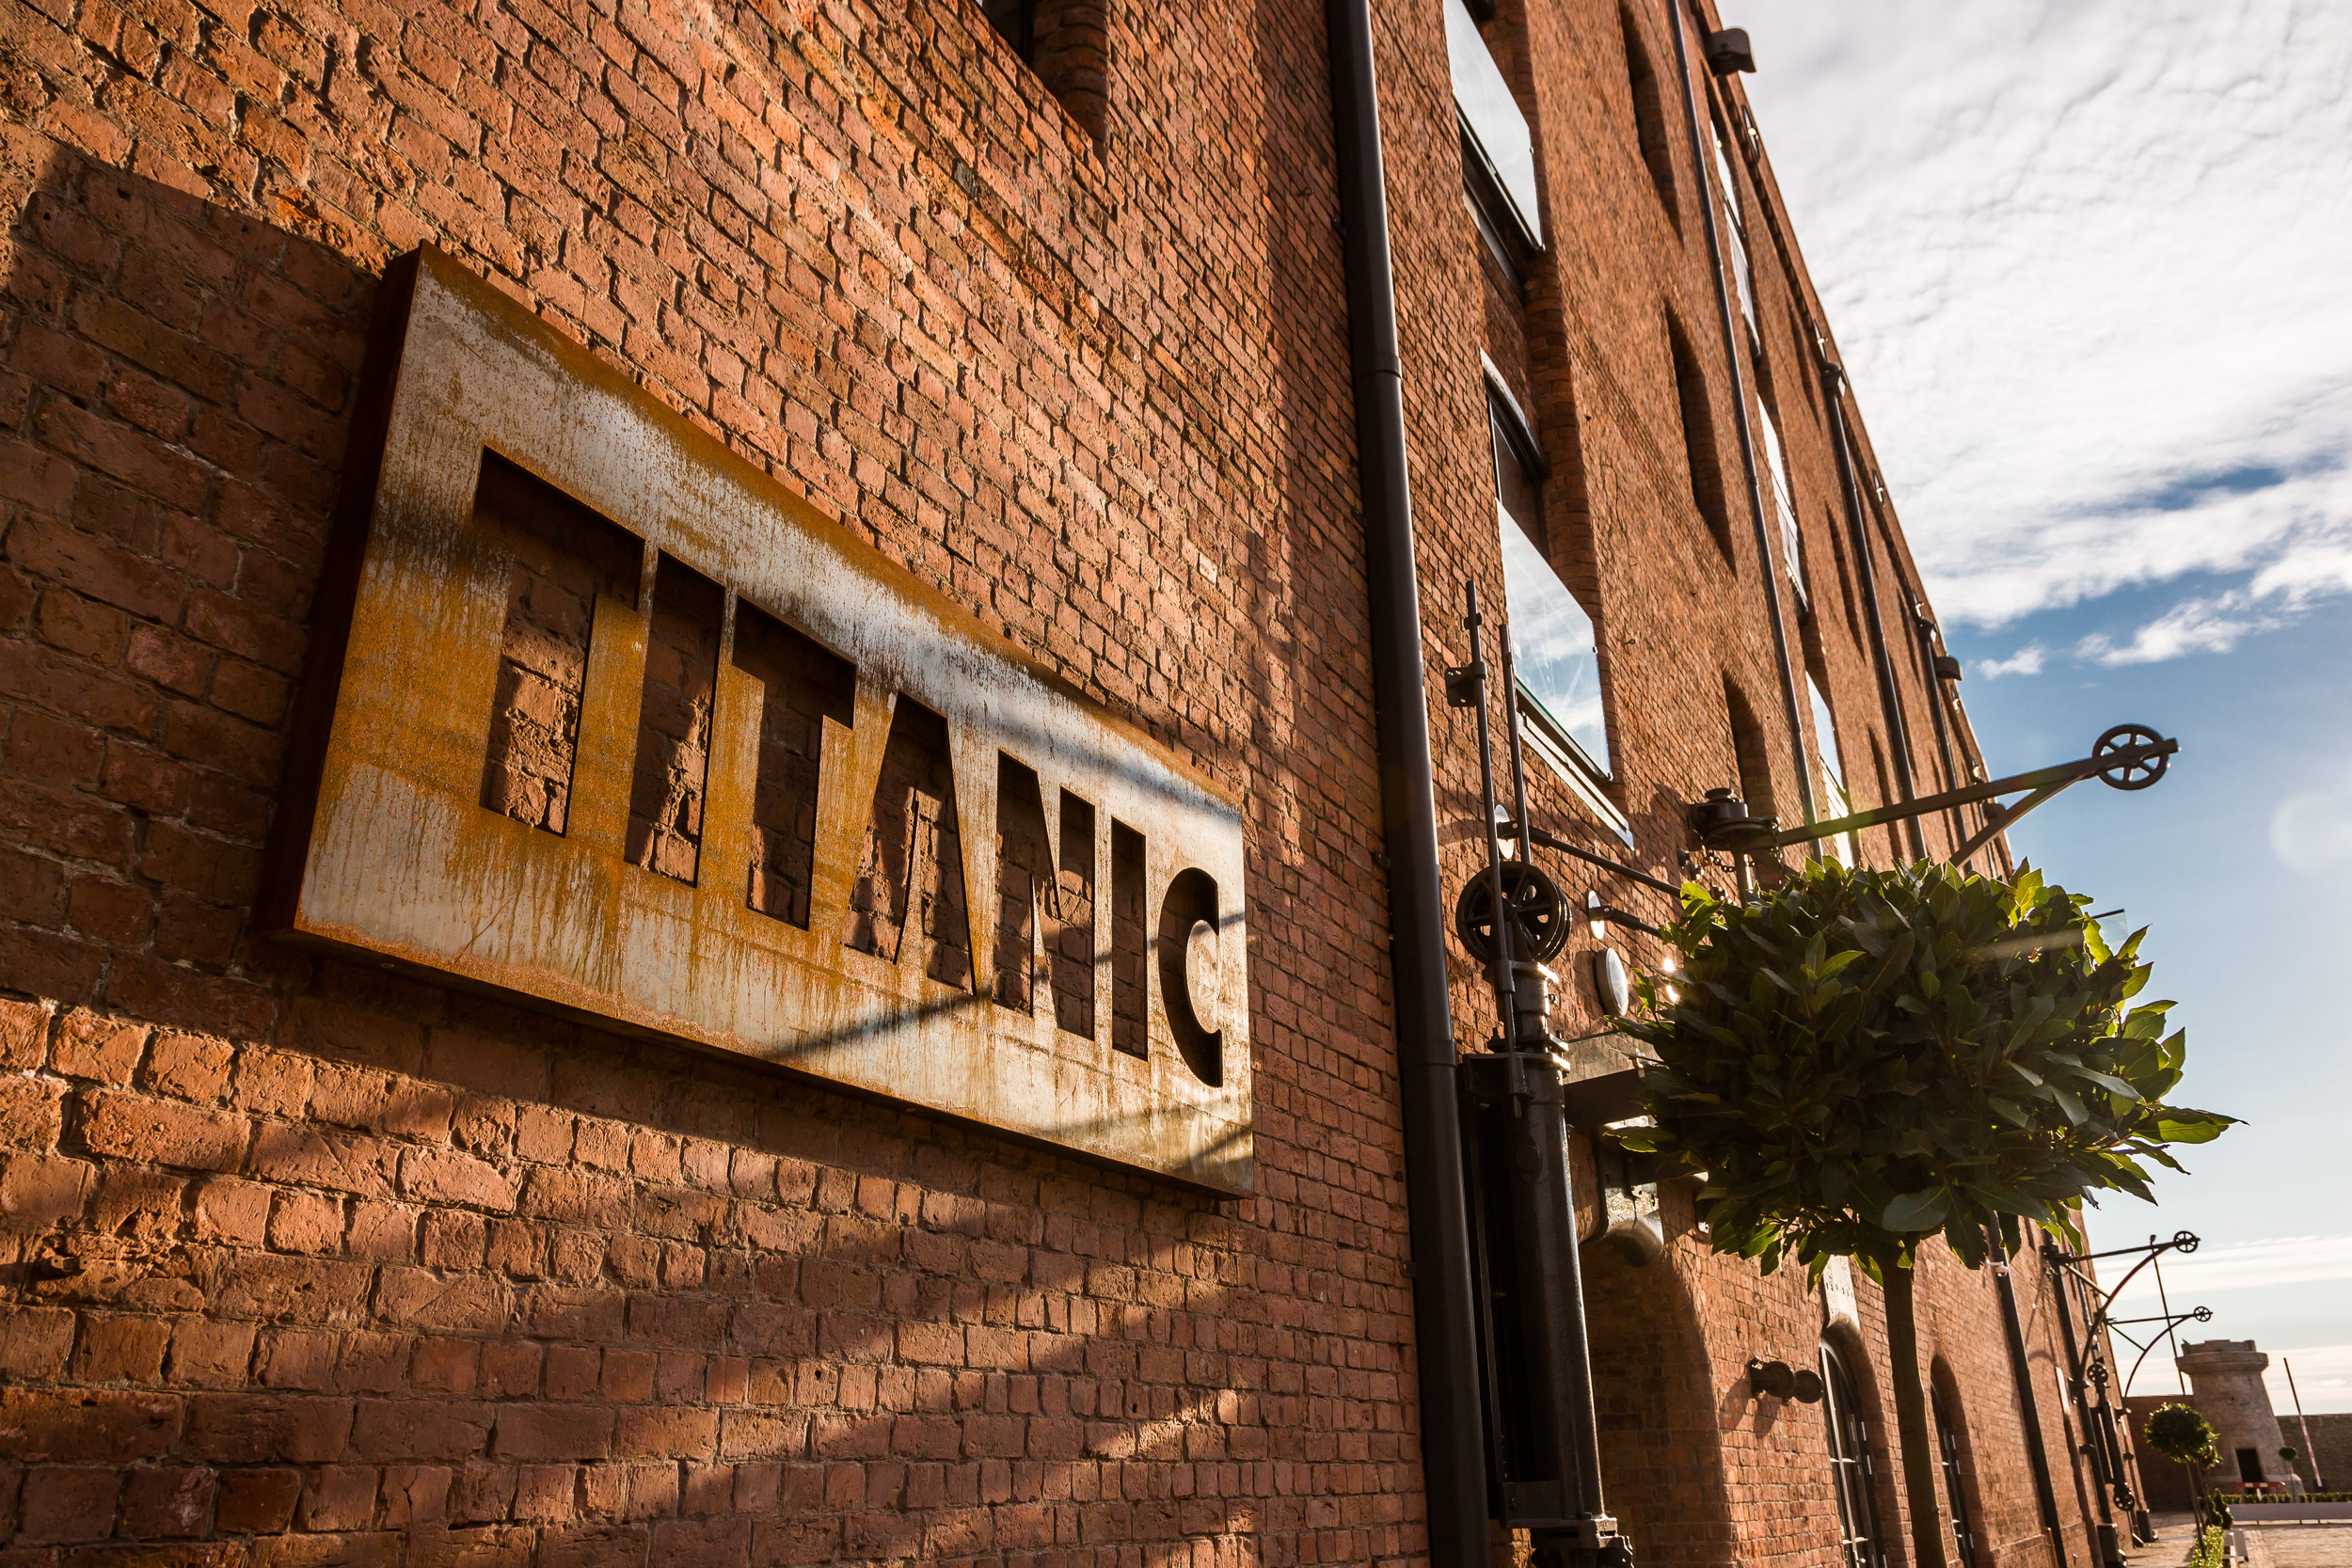 Titanic hotel Stanley Dock Liverpool wins award